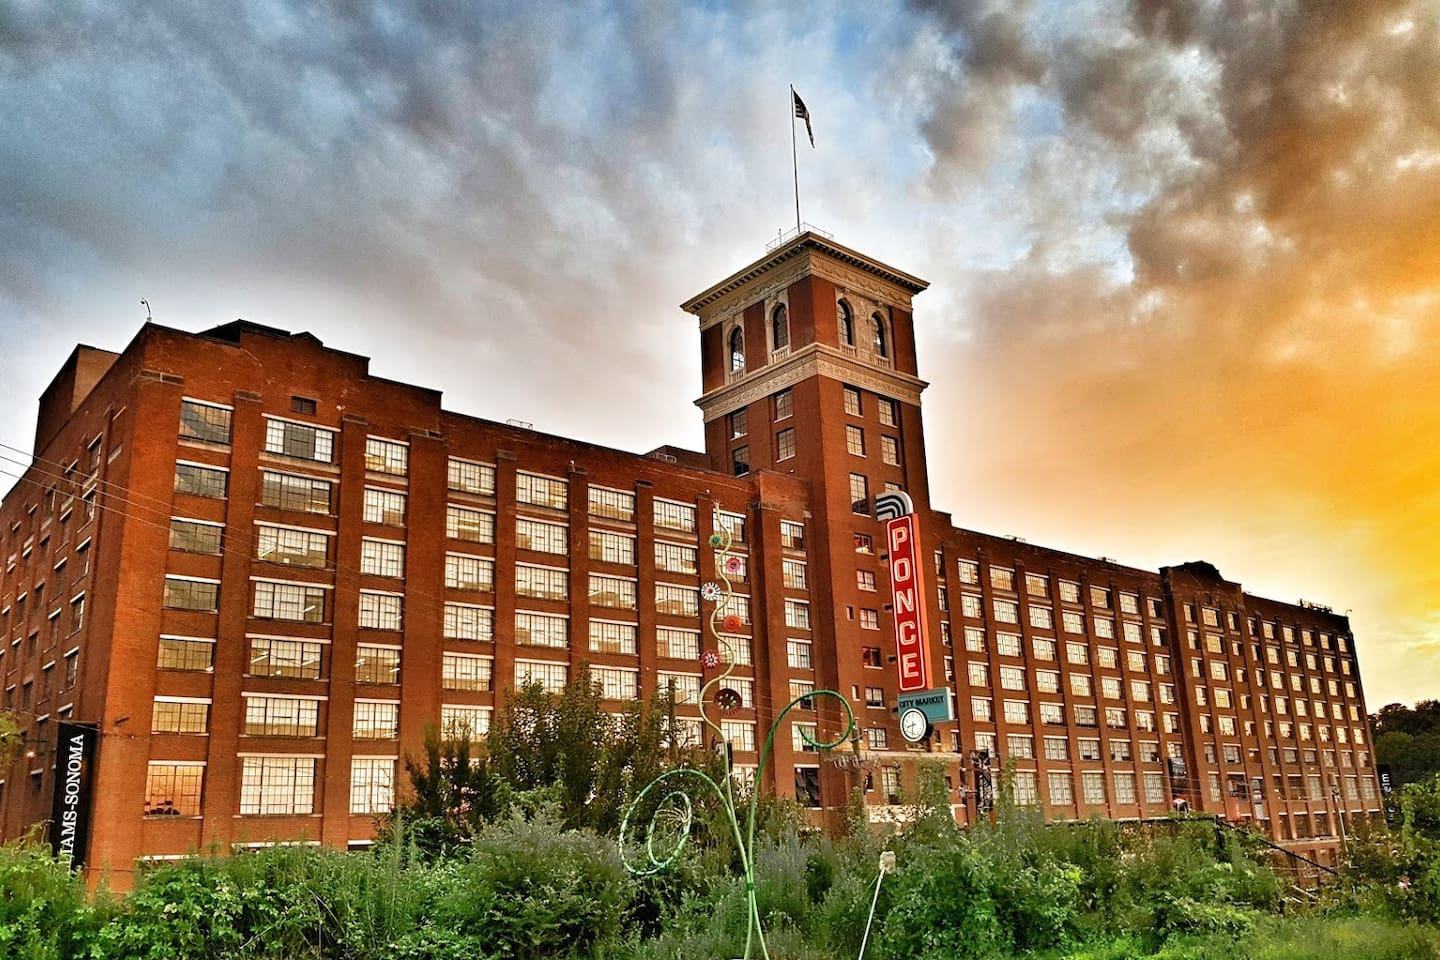 Stay across the street (less than 100 steps) from the famous Ponce City Market!